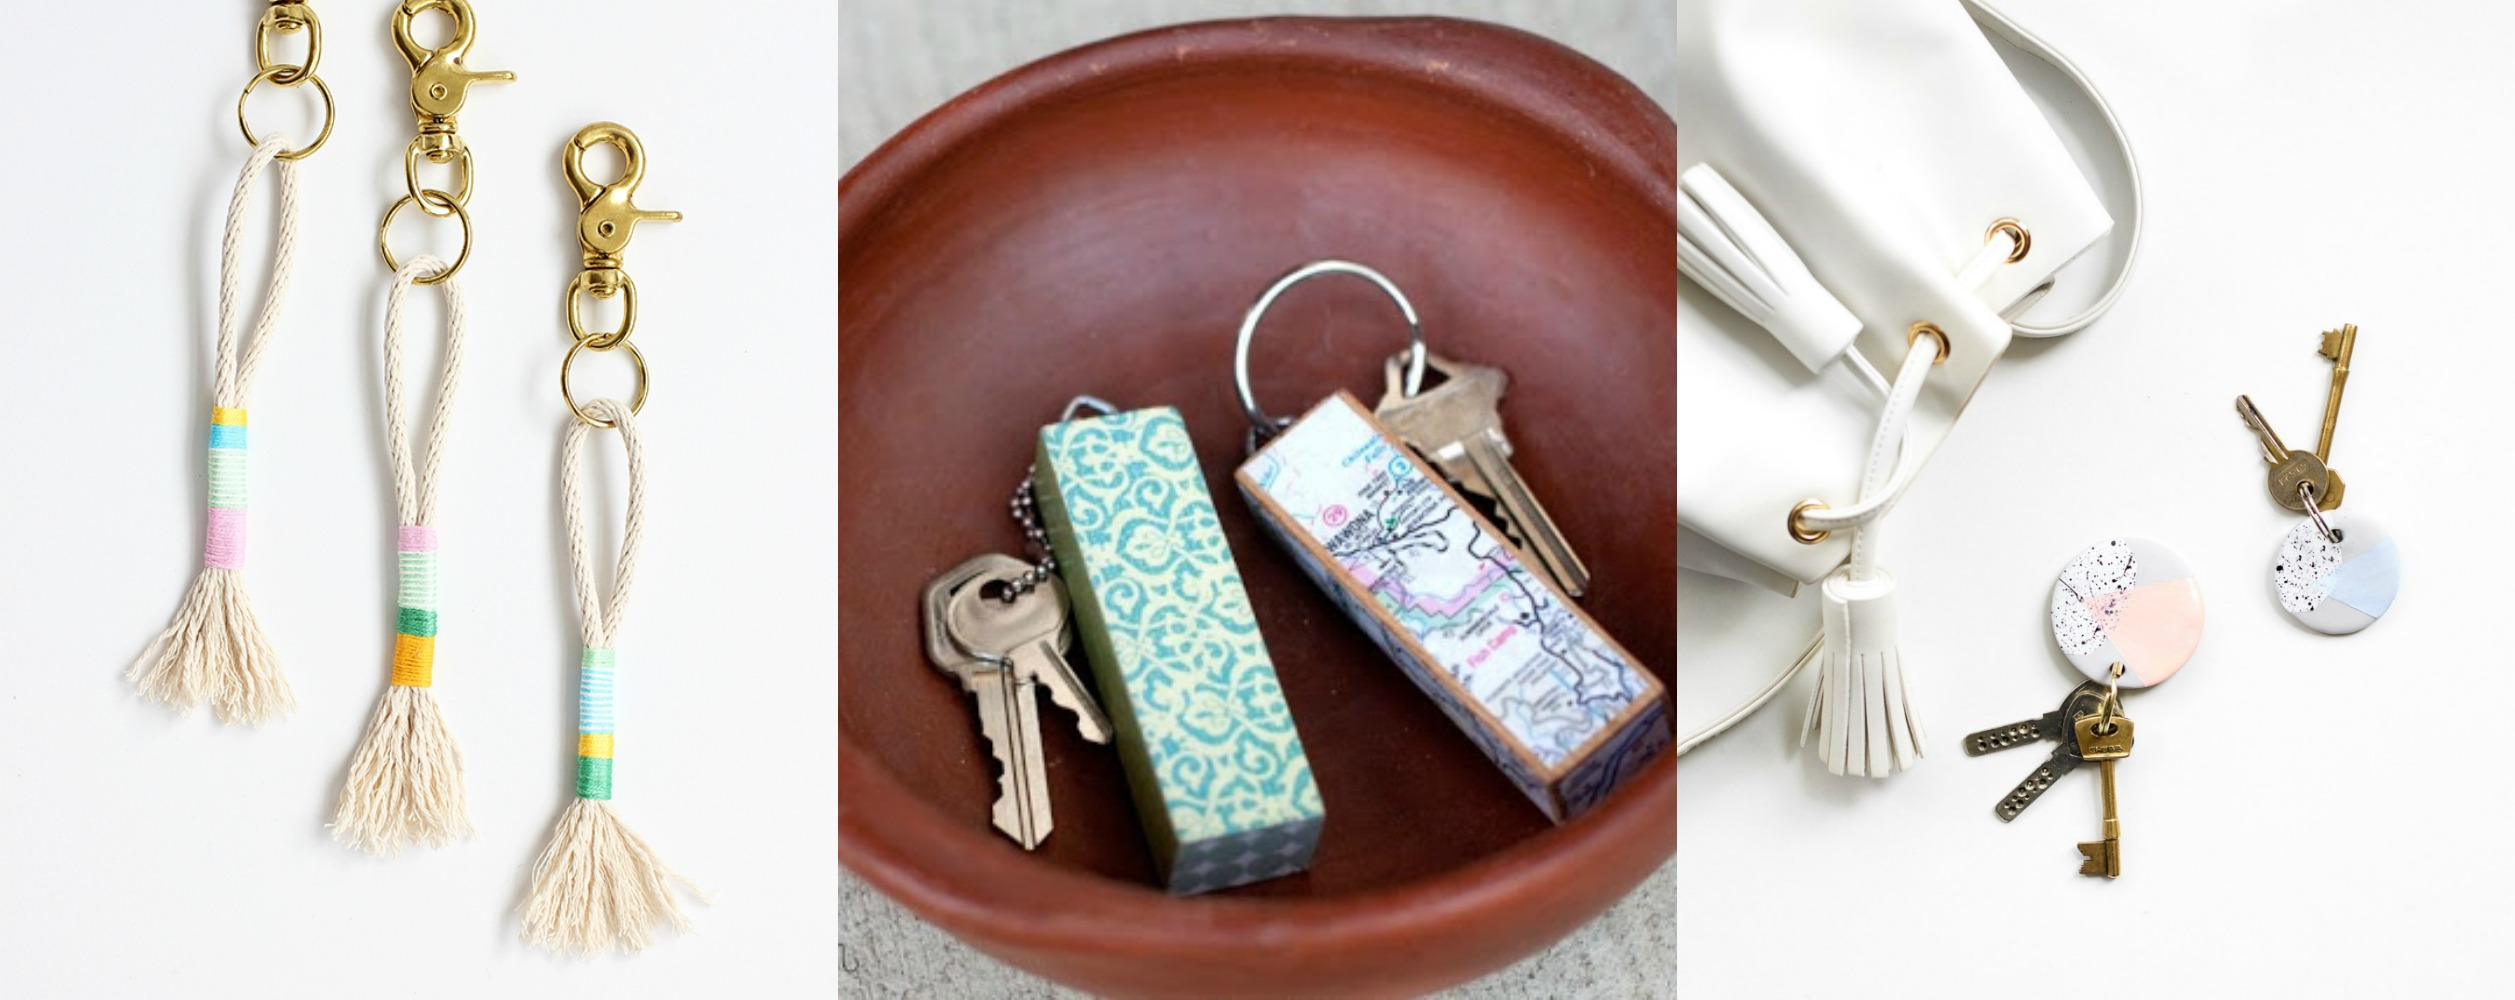 4f6264538 12 Diy Keychains To Make For Gifts – diy Thought